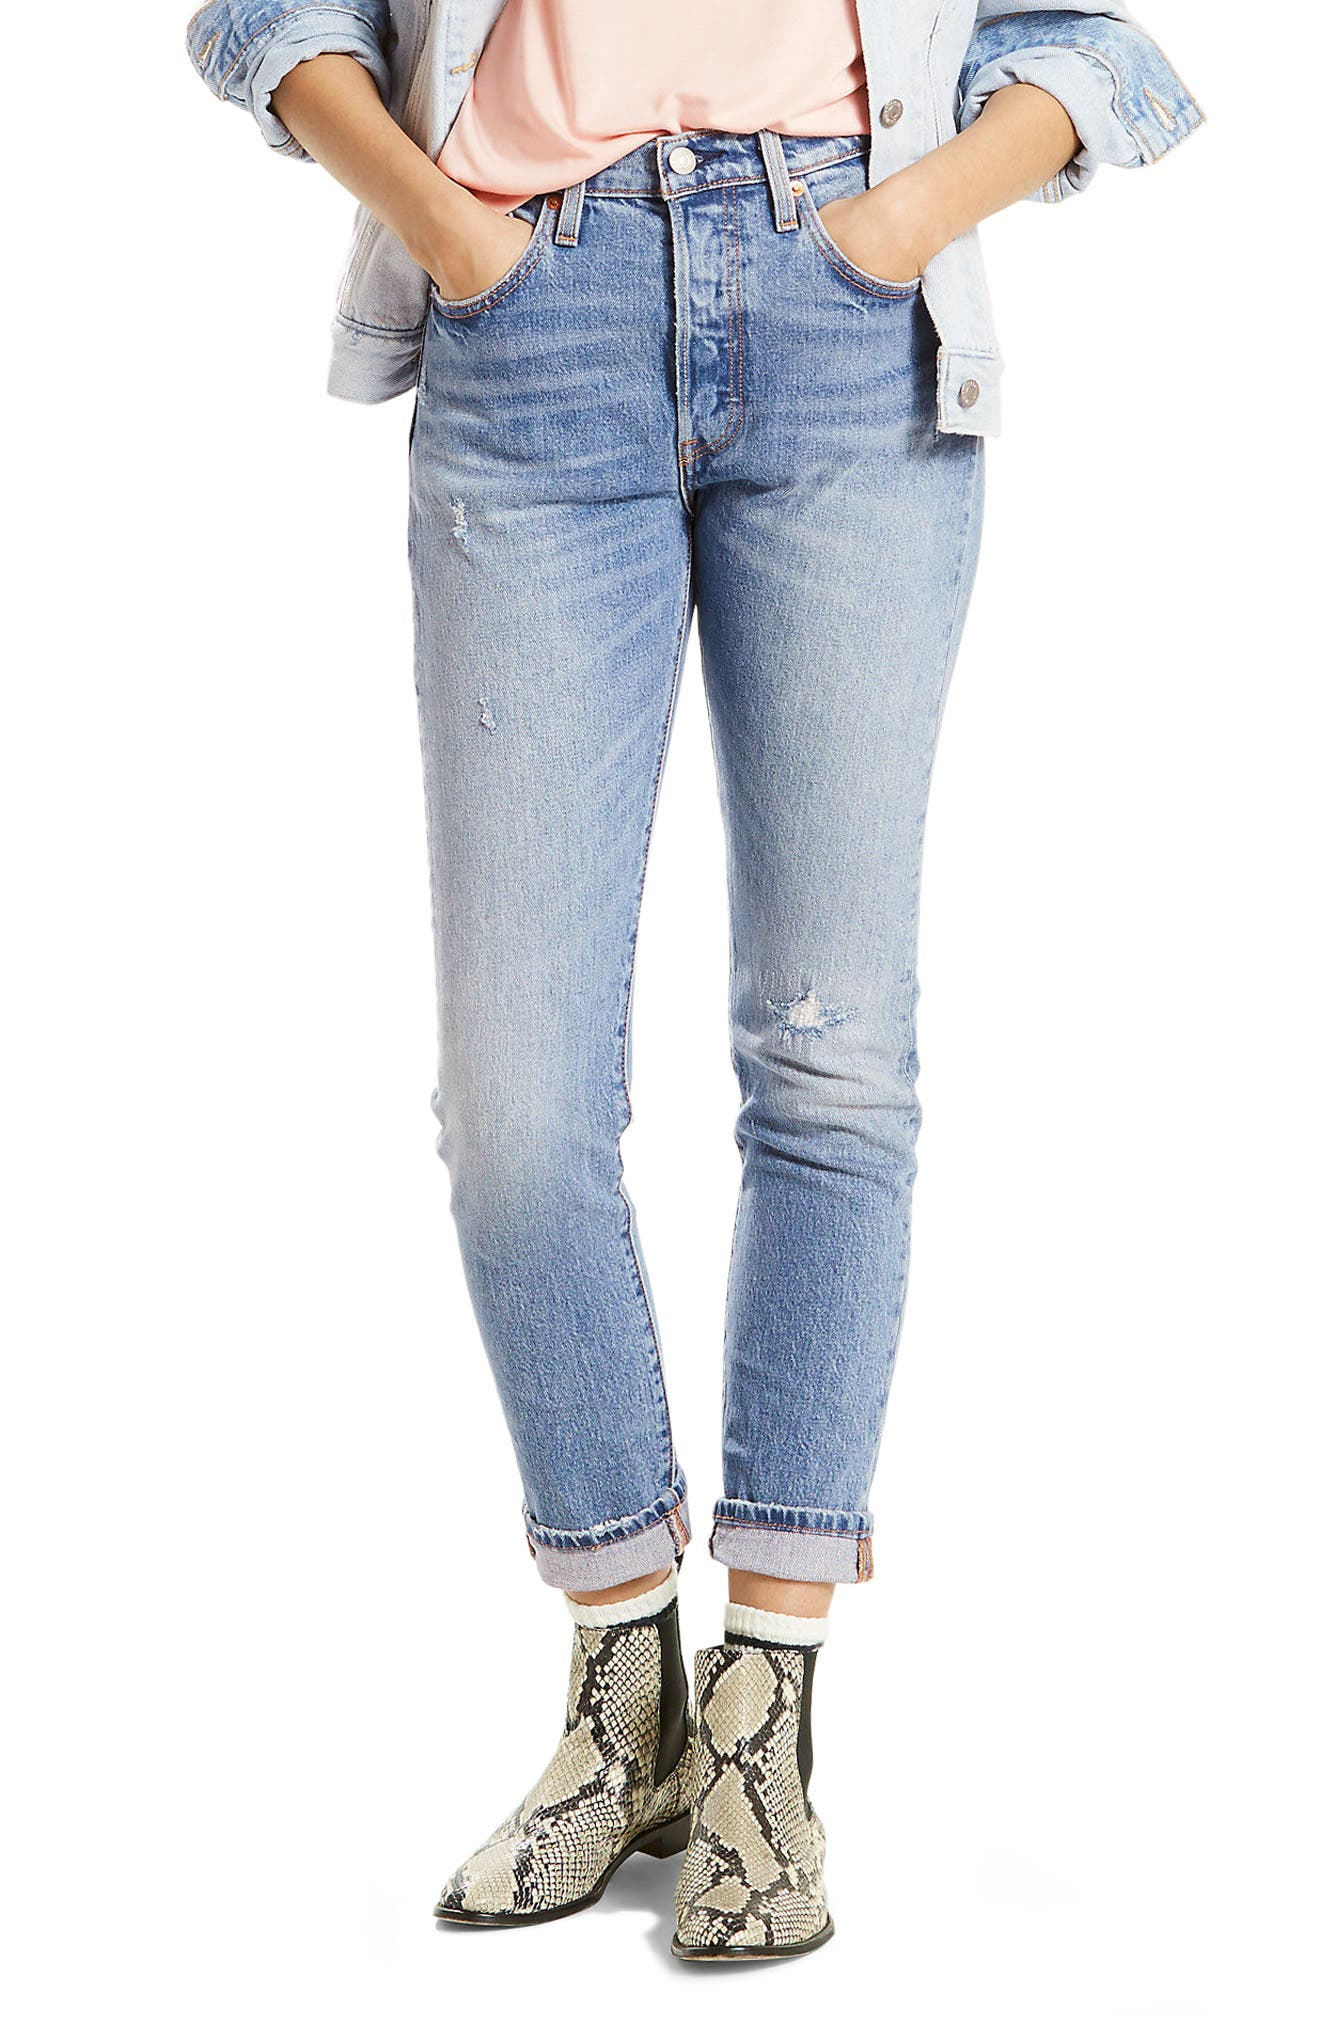 501 High Waist Skinny Jeans,                             Main thumbnail 1, color,                             420